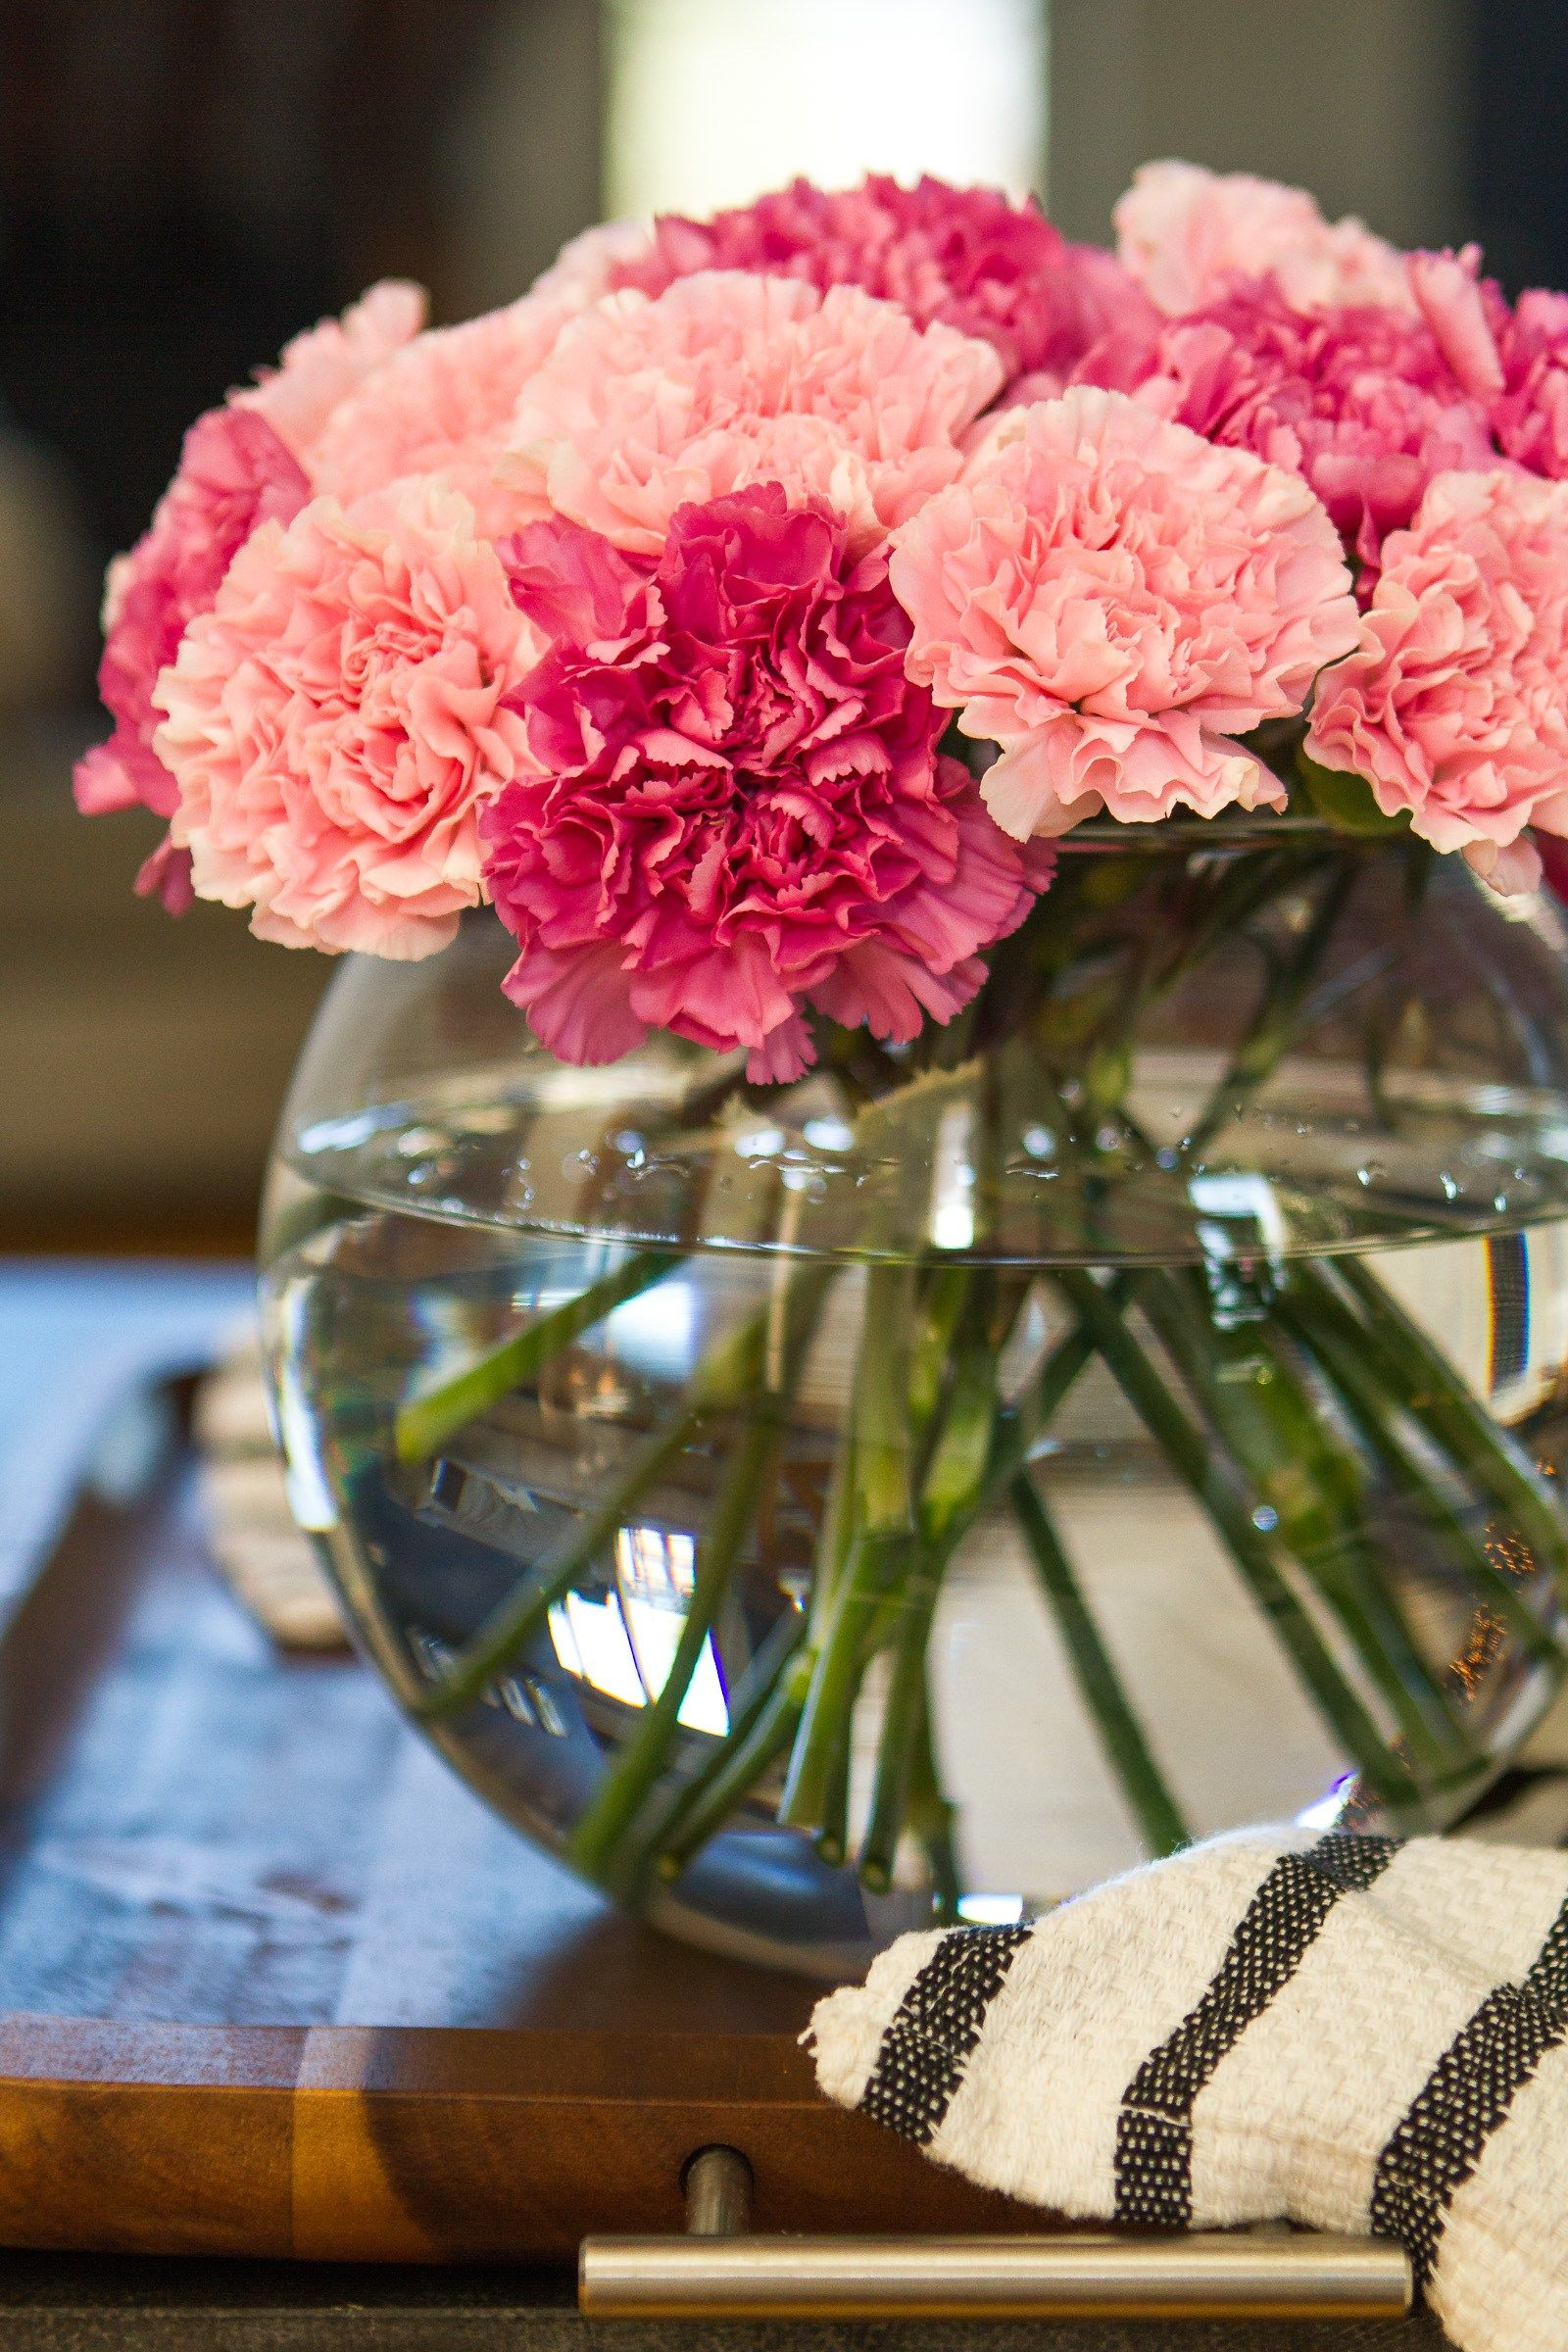 Simple Carnation Flower Arrangement This Stunning Diy Carnation Flower Arrangement R Pink Flower Arrangements Fresh Flowers Arrangements Flower Arrangements